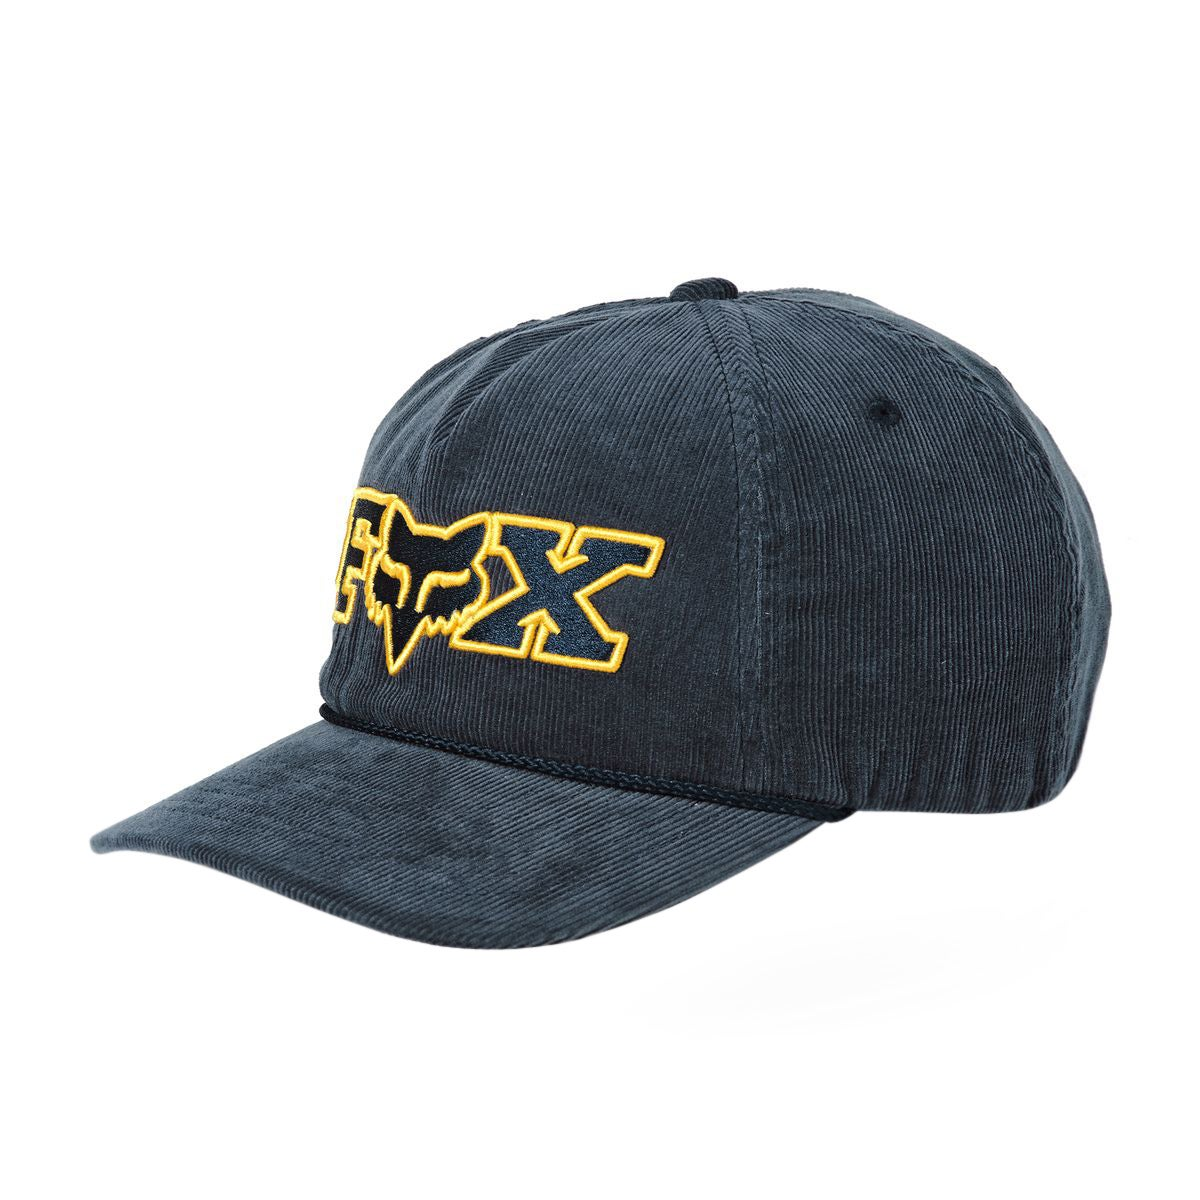 sports shoes dfcae dee60 ... promo code for fox racing get hakked snapback cap blue 3ddbd 926b7